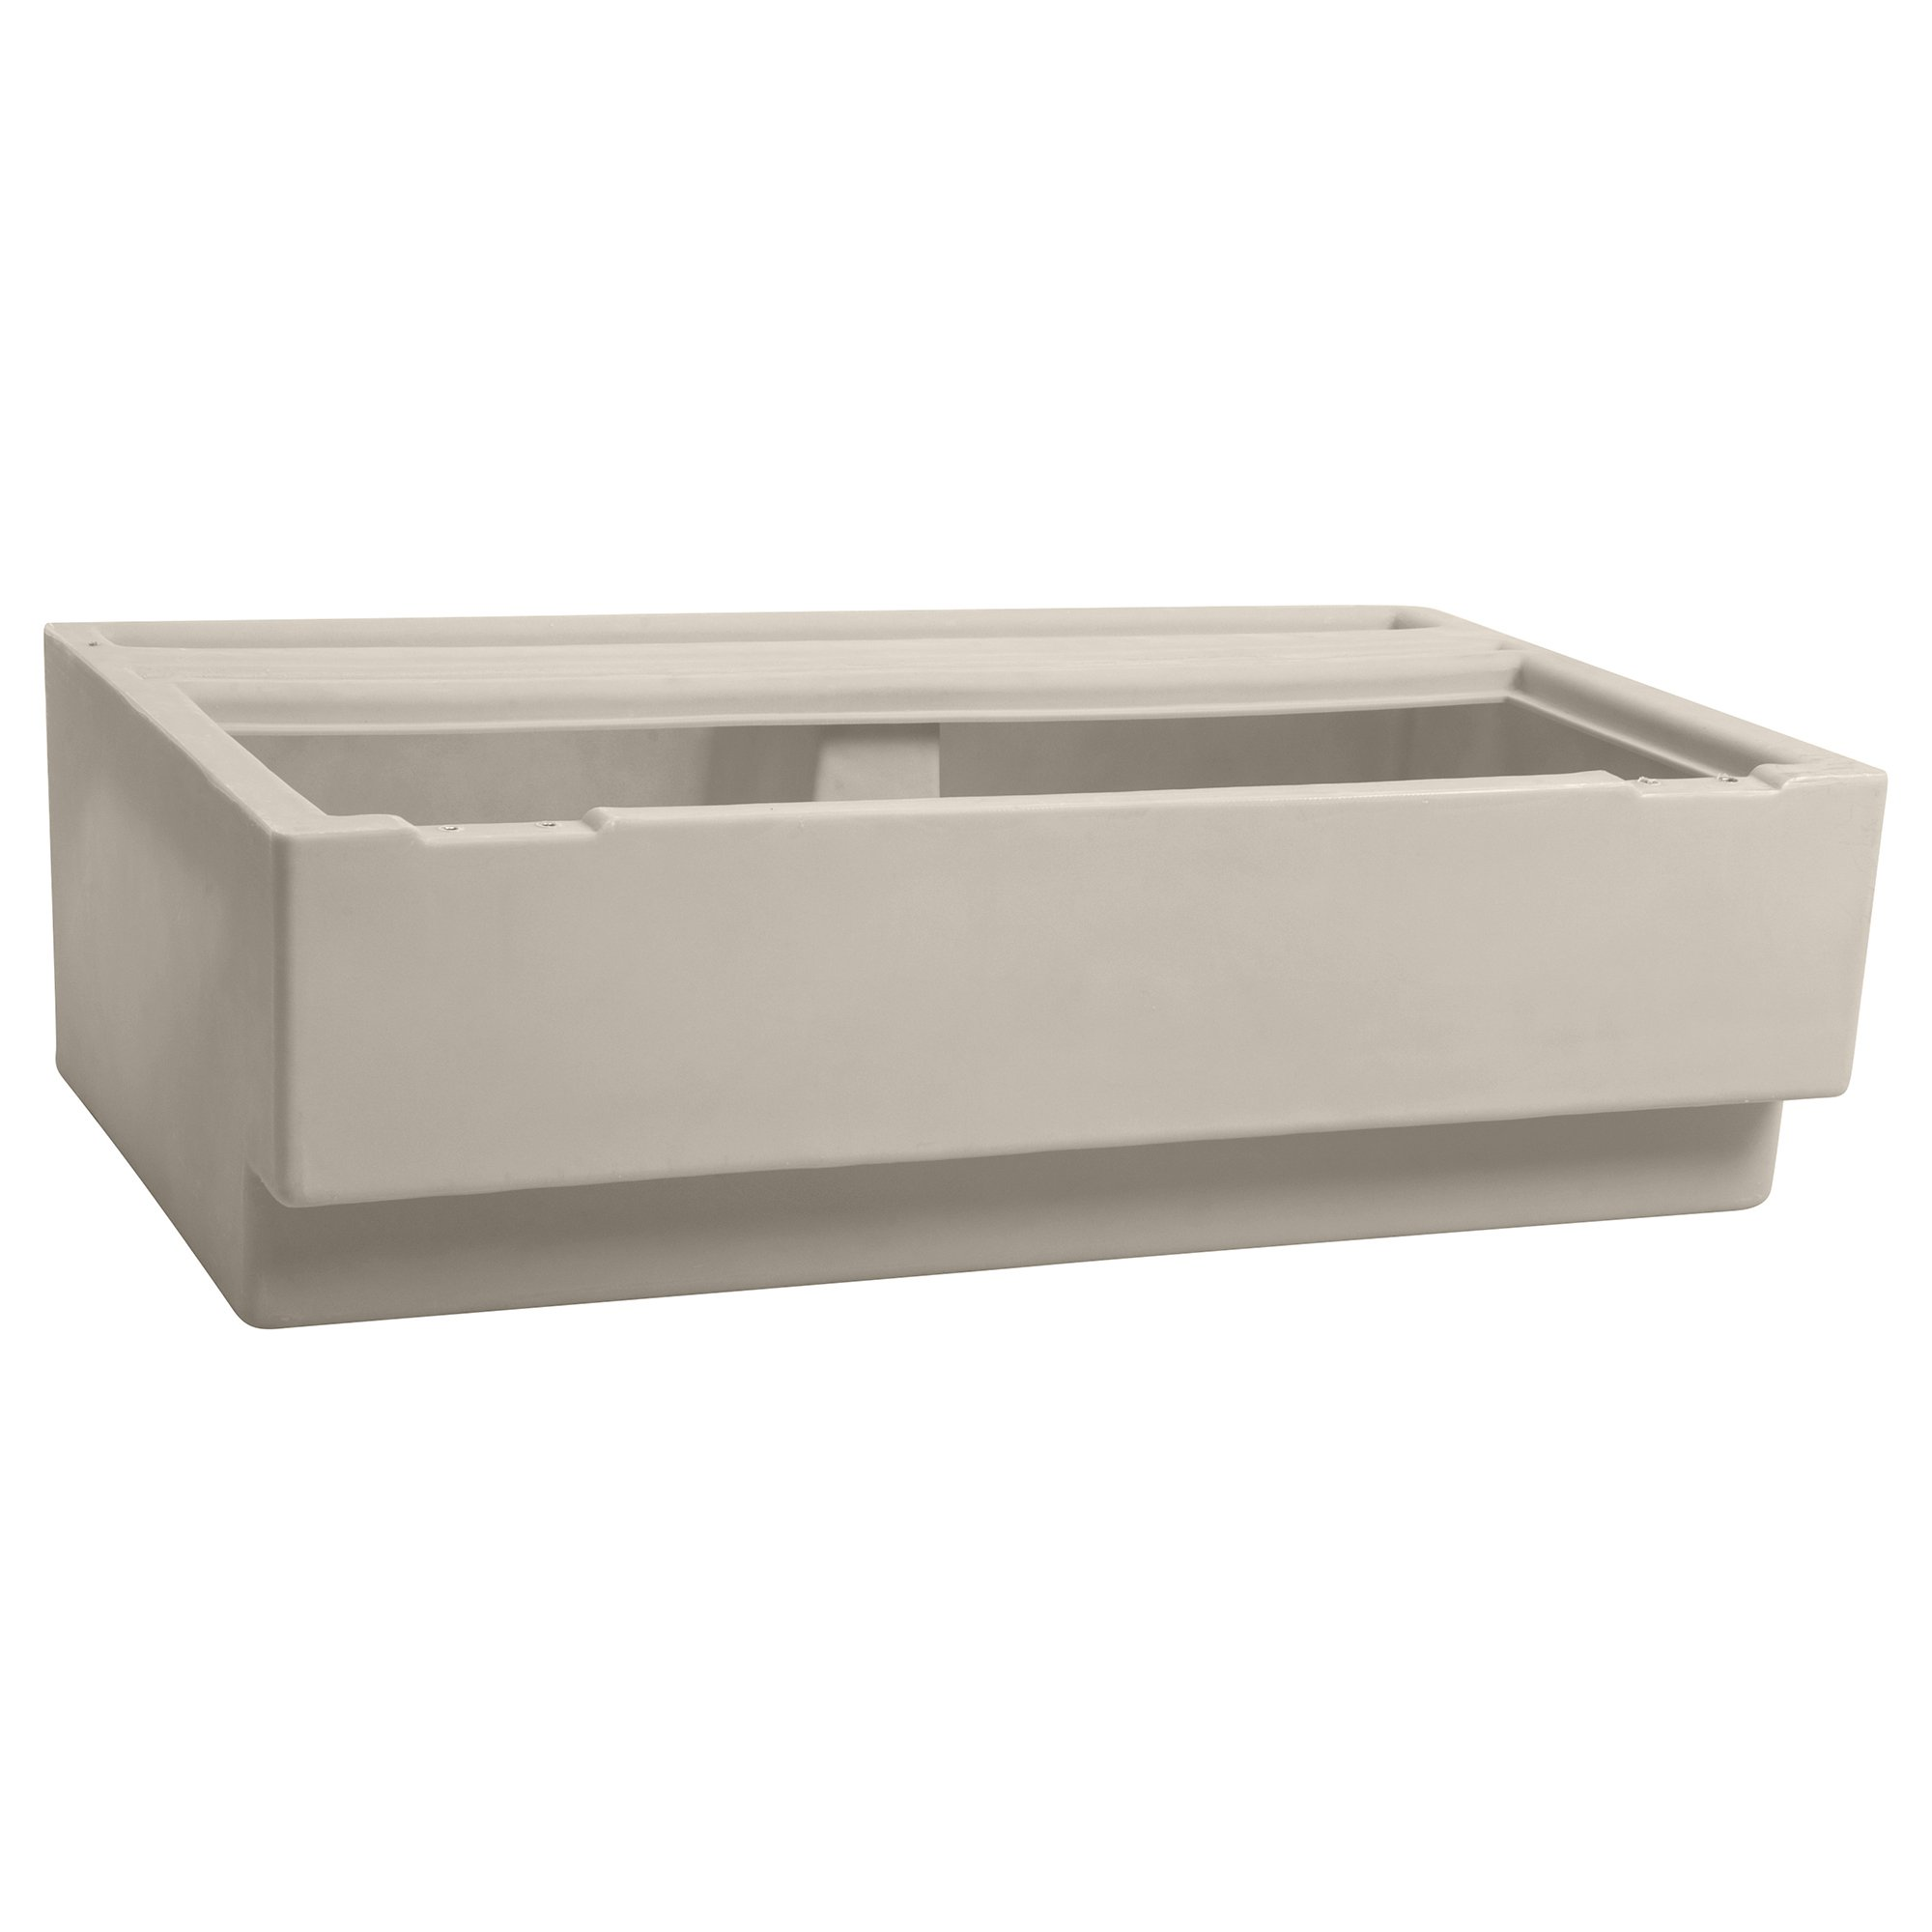 "Toonmate Pontoon 27"" Bench Seat Base"